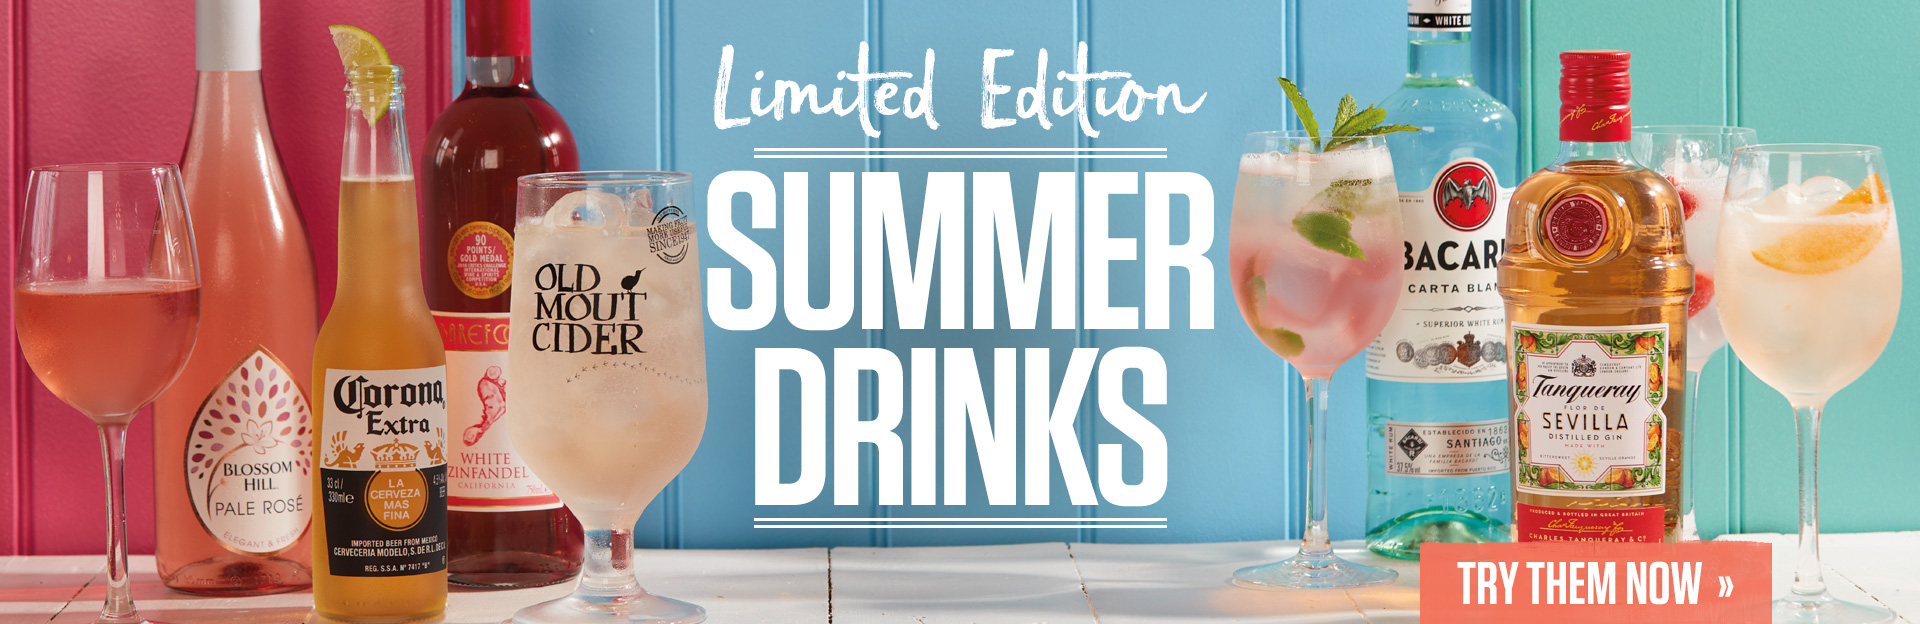 Summer Drinks at Sizzling